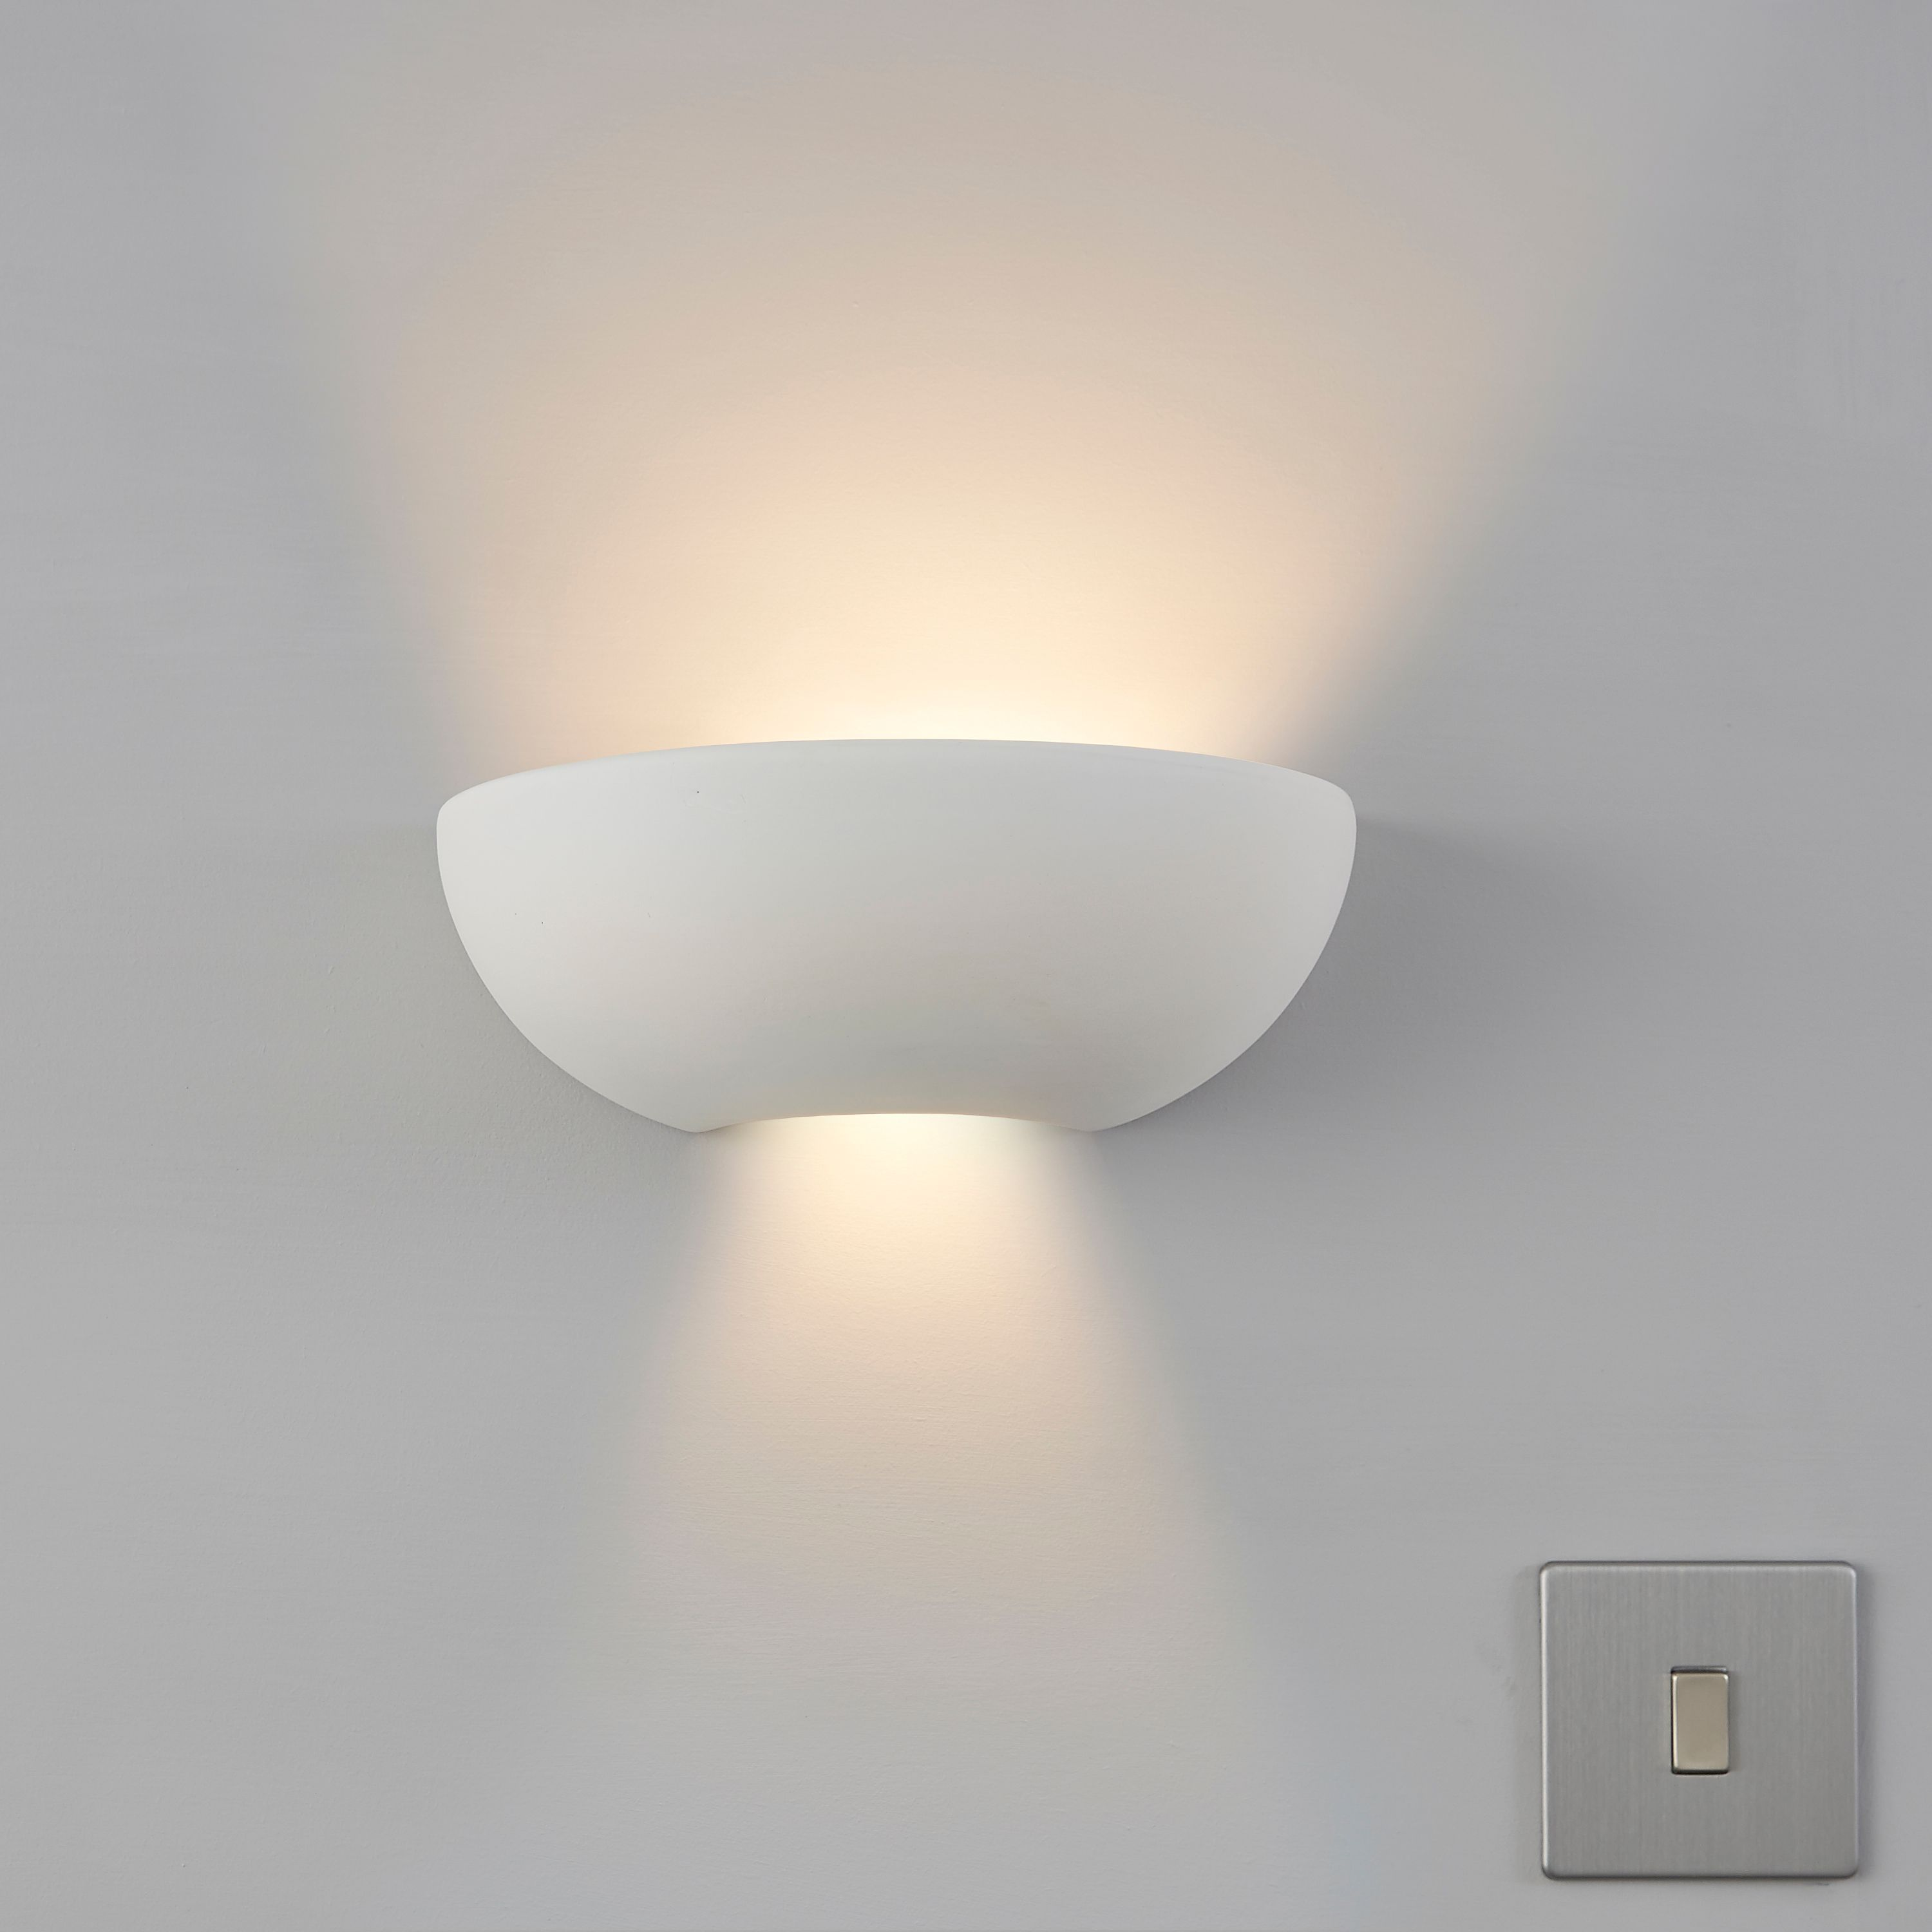 Wall Light Bq Lighting Wall Lights Craluxlighting Com Light